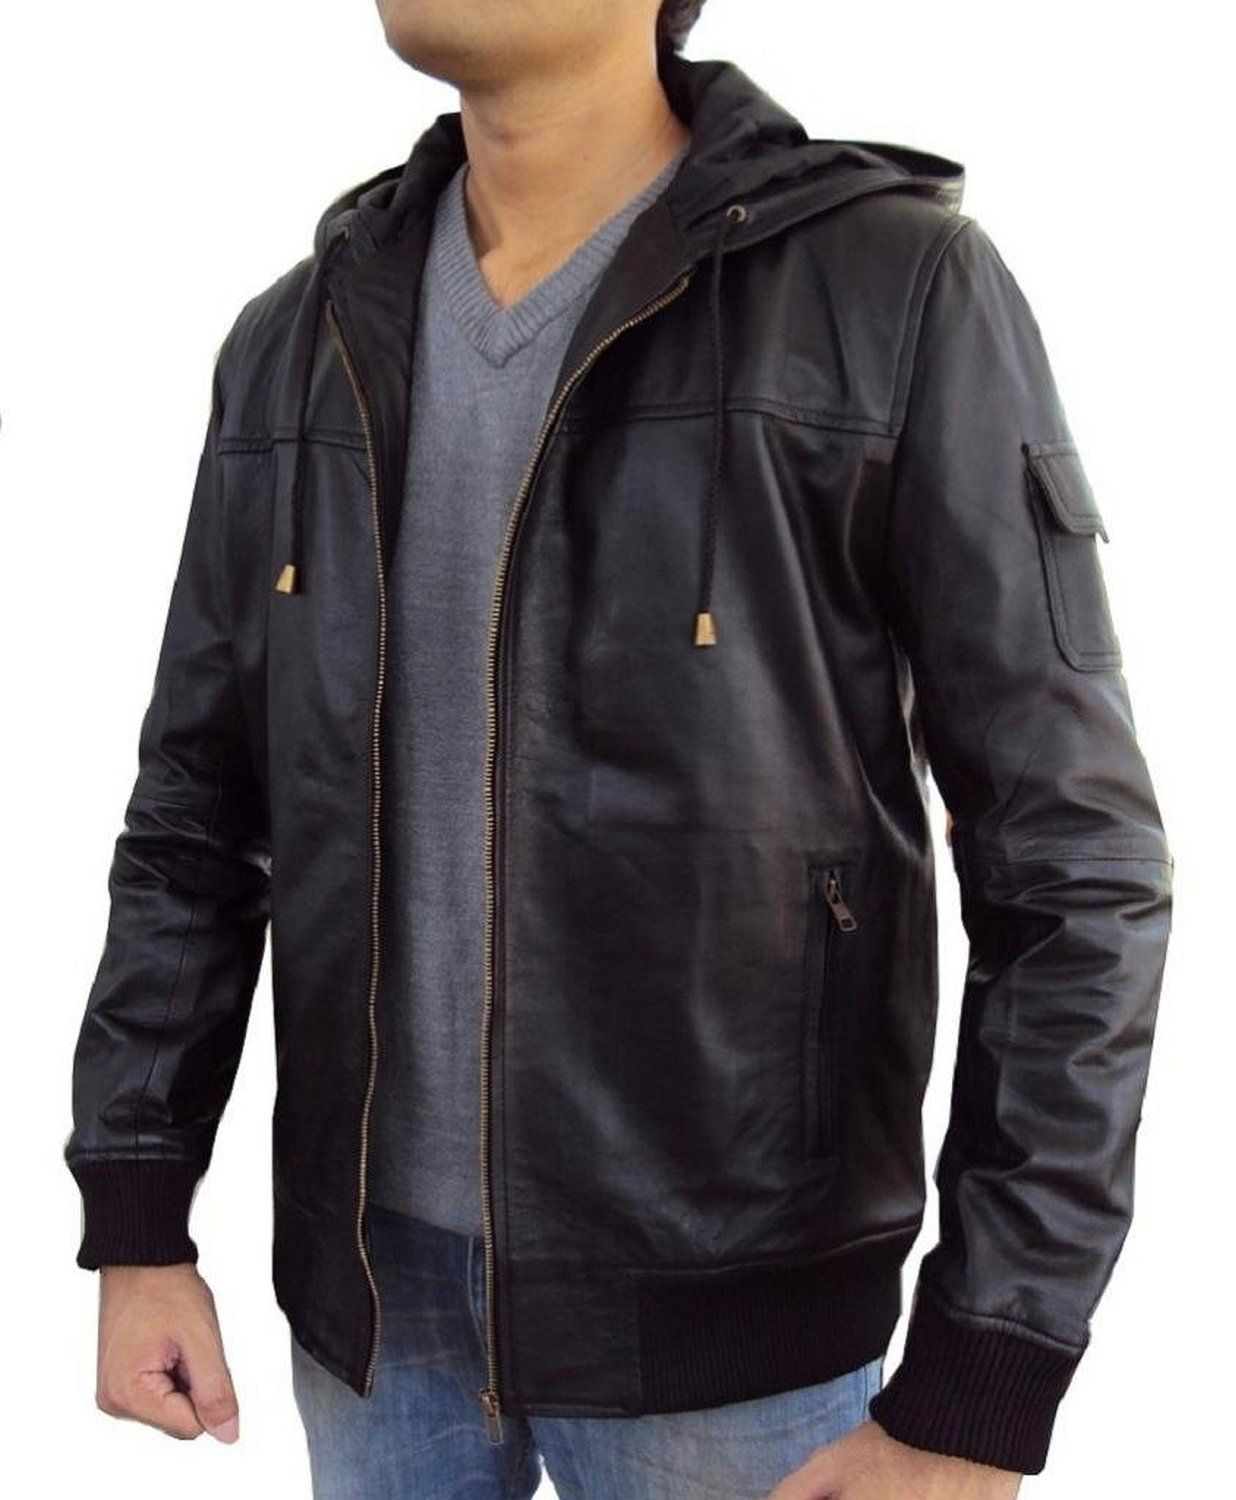 The Leather Factory Men's Lambskin Leather Fixed Hoodie